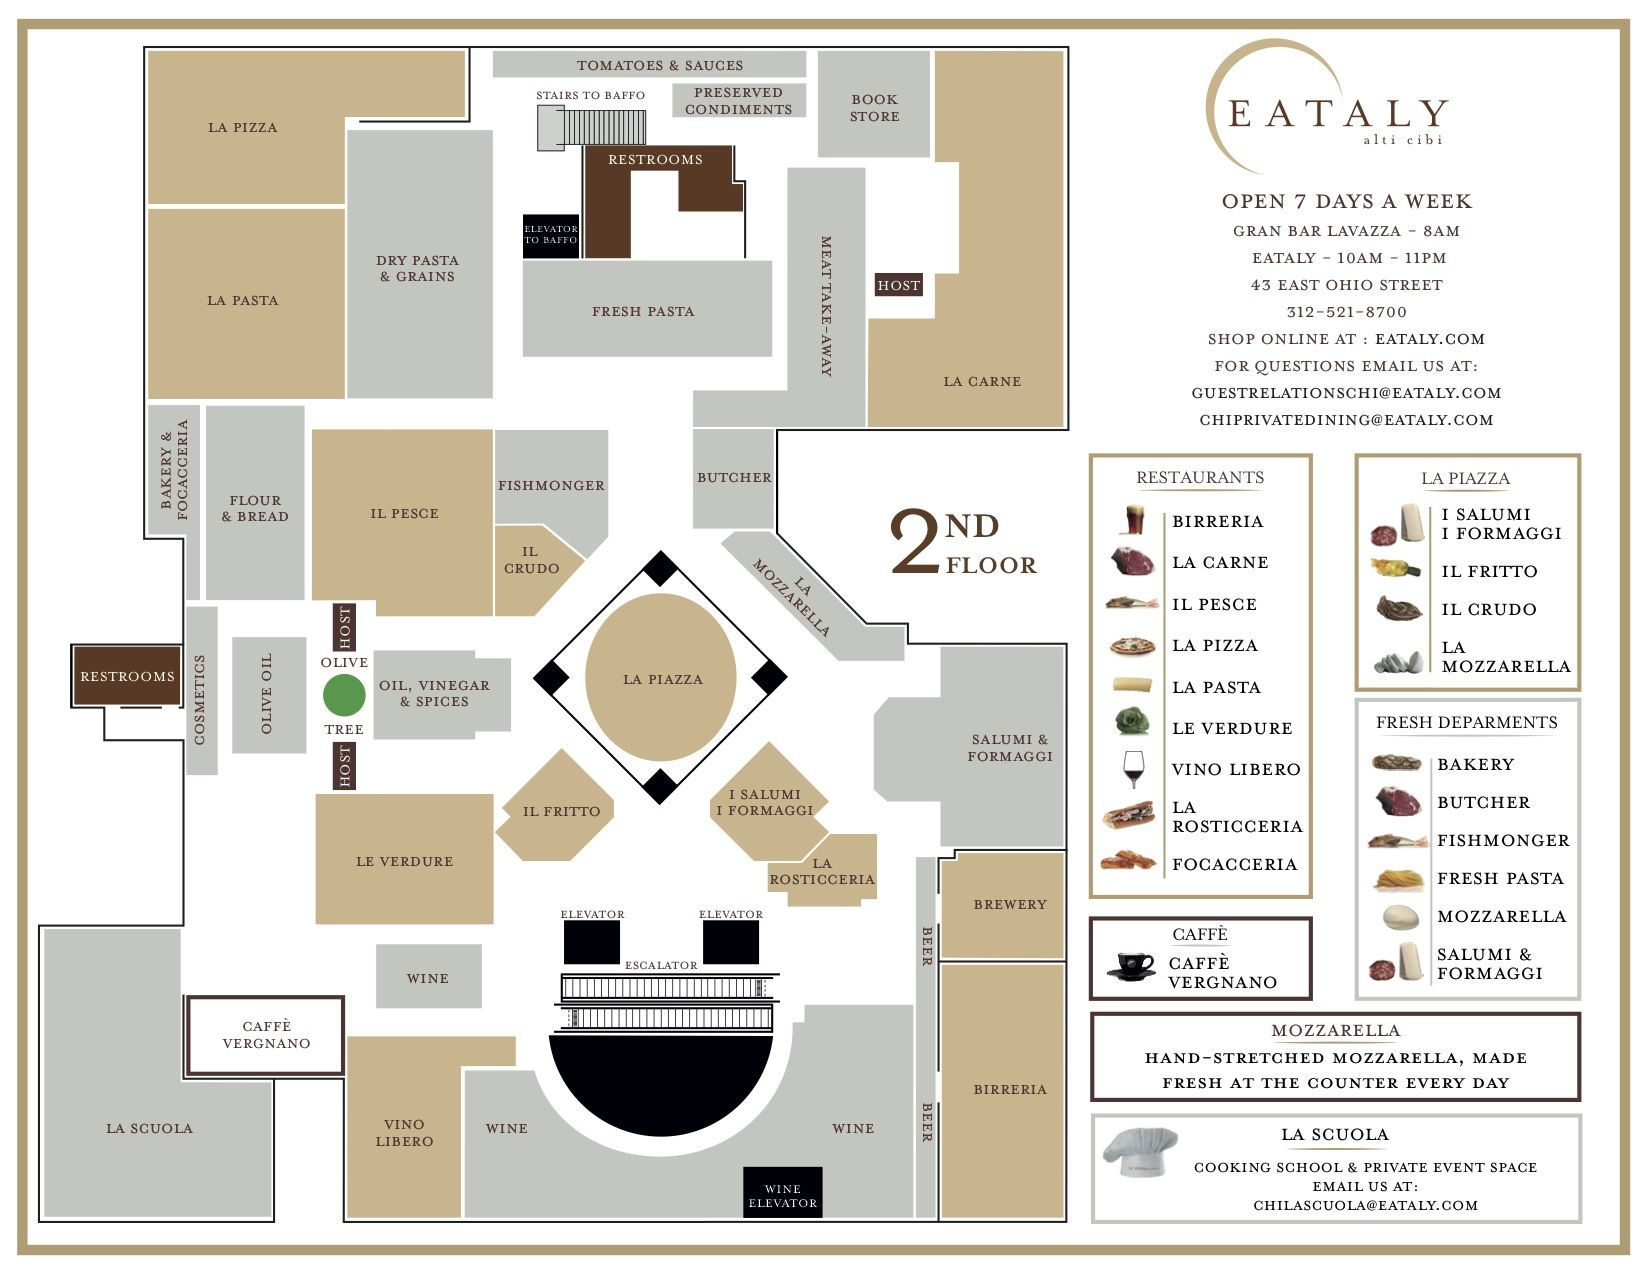 eataly chicago a fun experience places in chicago chicago map oh the places [ 1650 x 1275 Pixel ]